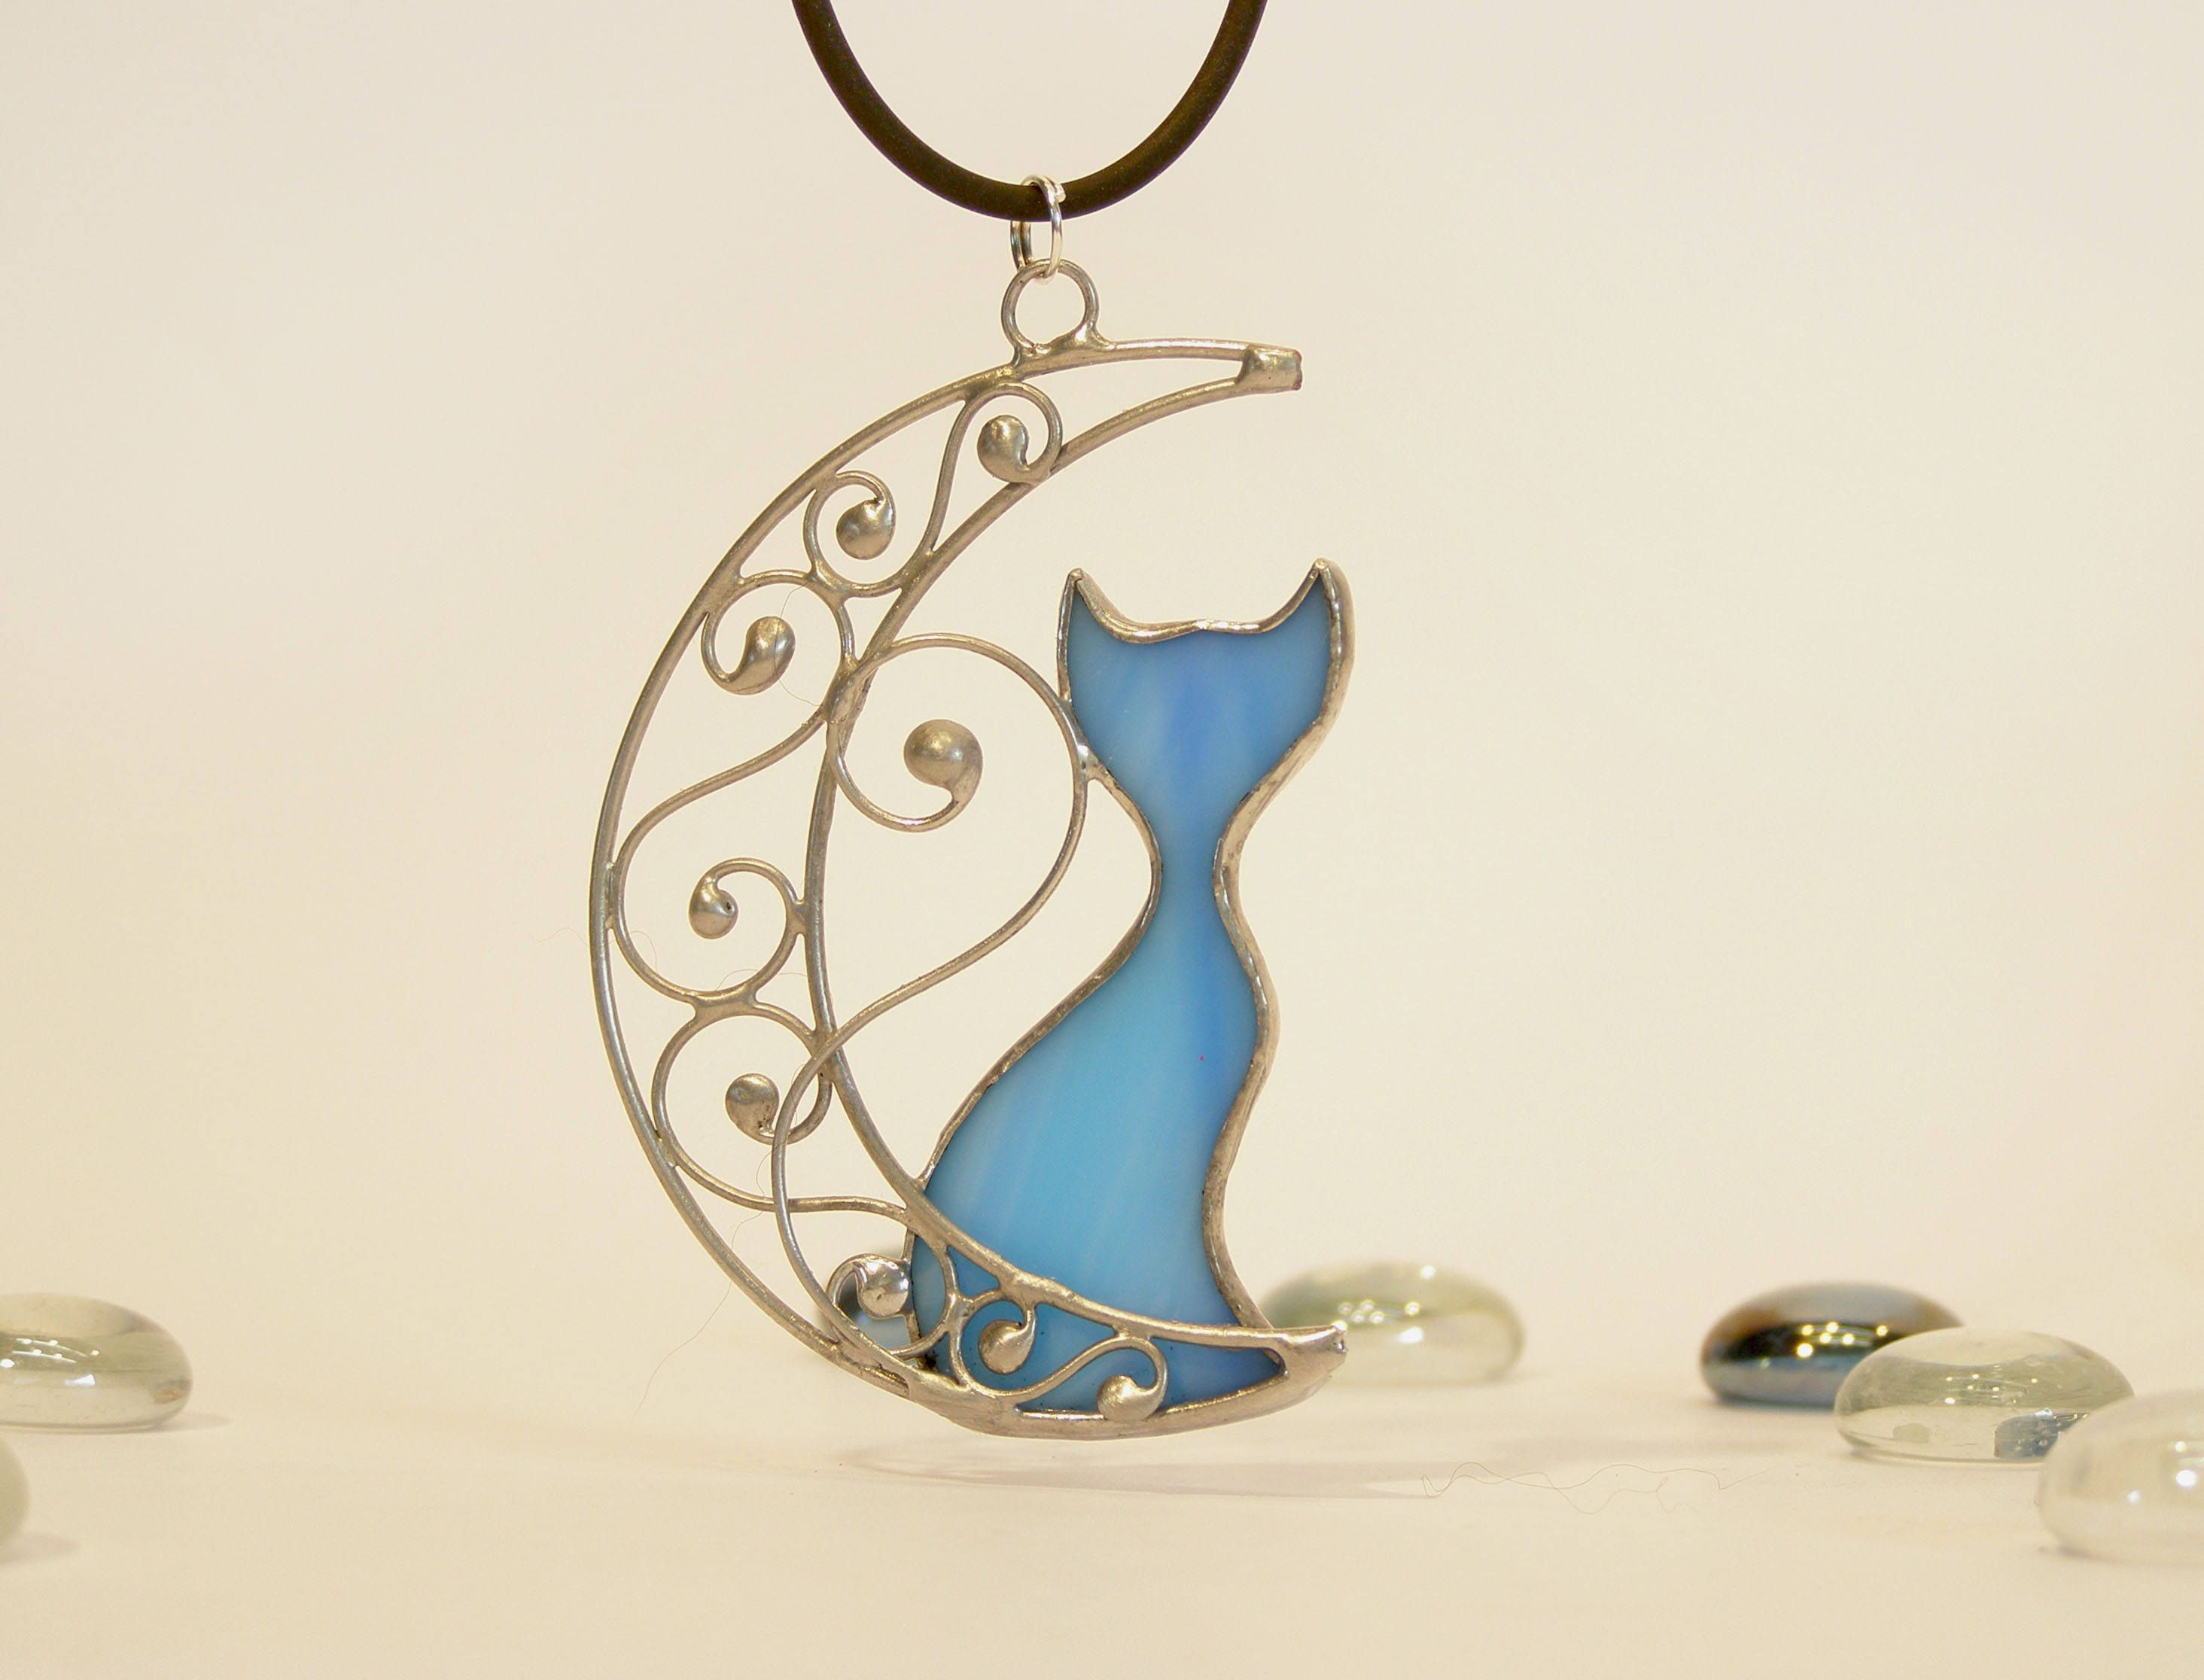 jewelry jewellery necklace products image petite purrfect the cat druzy accessory